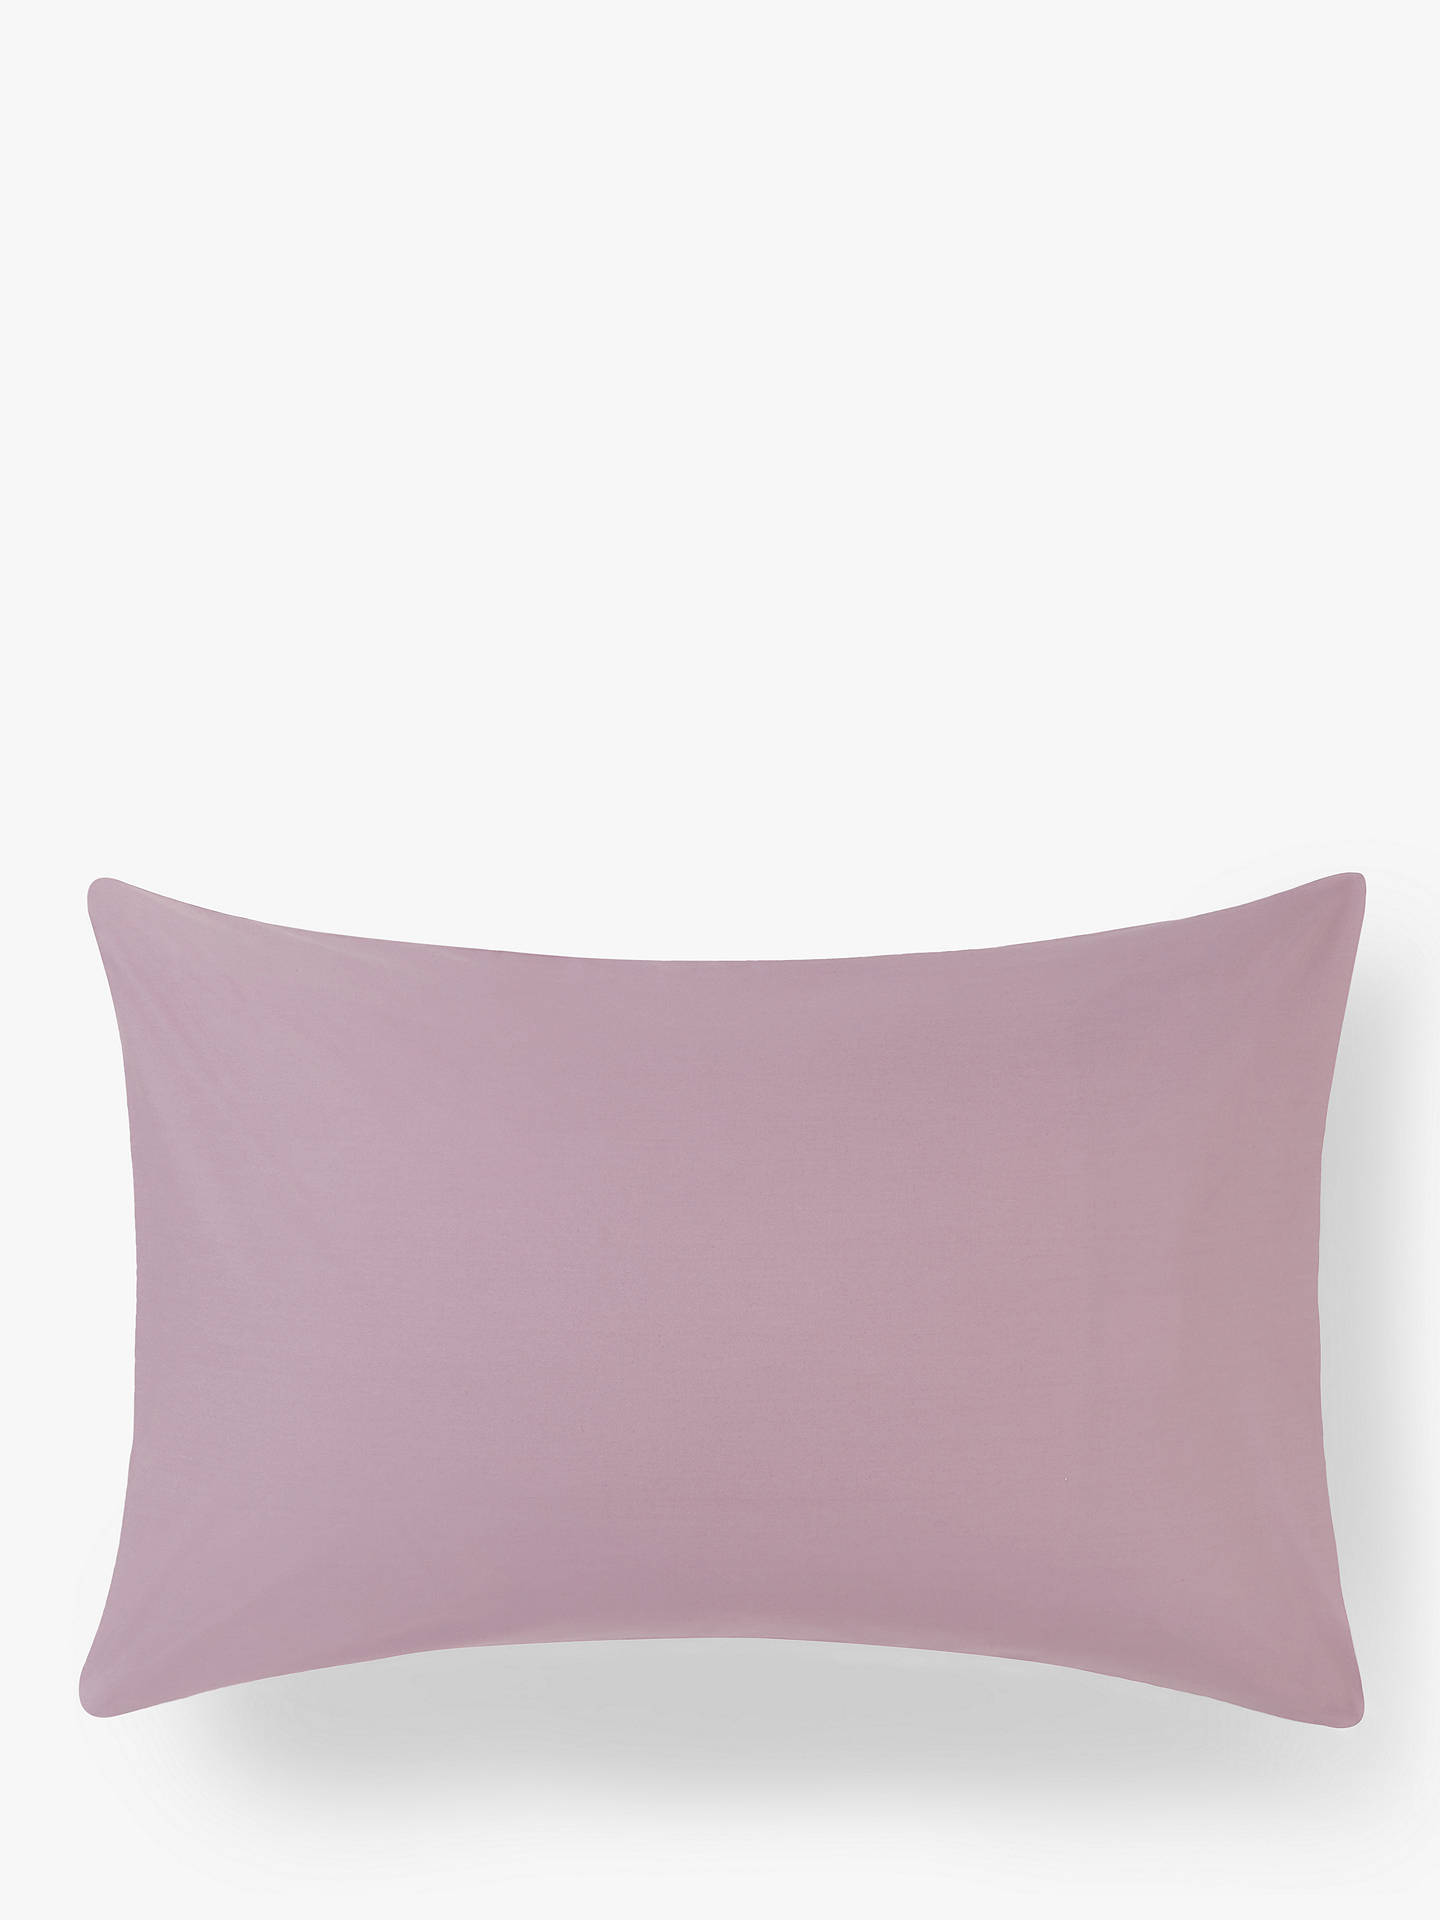 Buy John Lewis & Partners 200 Thread Count Cotton Standard Pillowcase, Amethyst Online at johnlewis.com